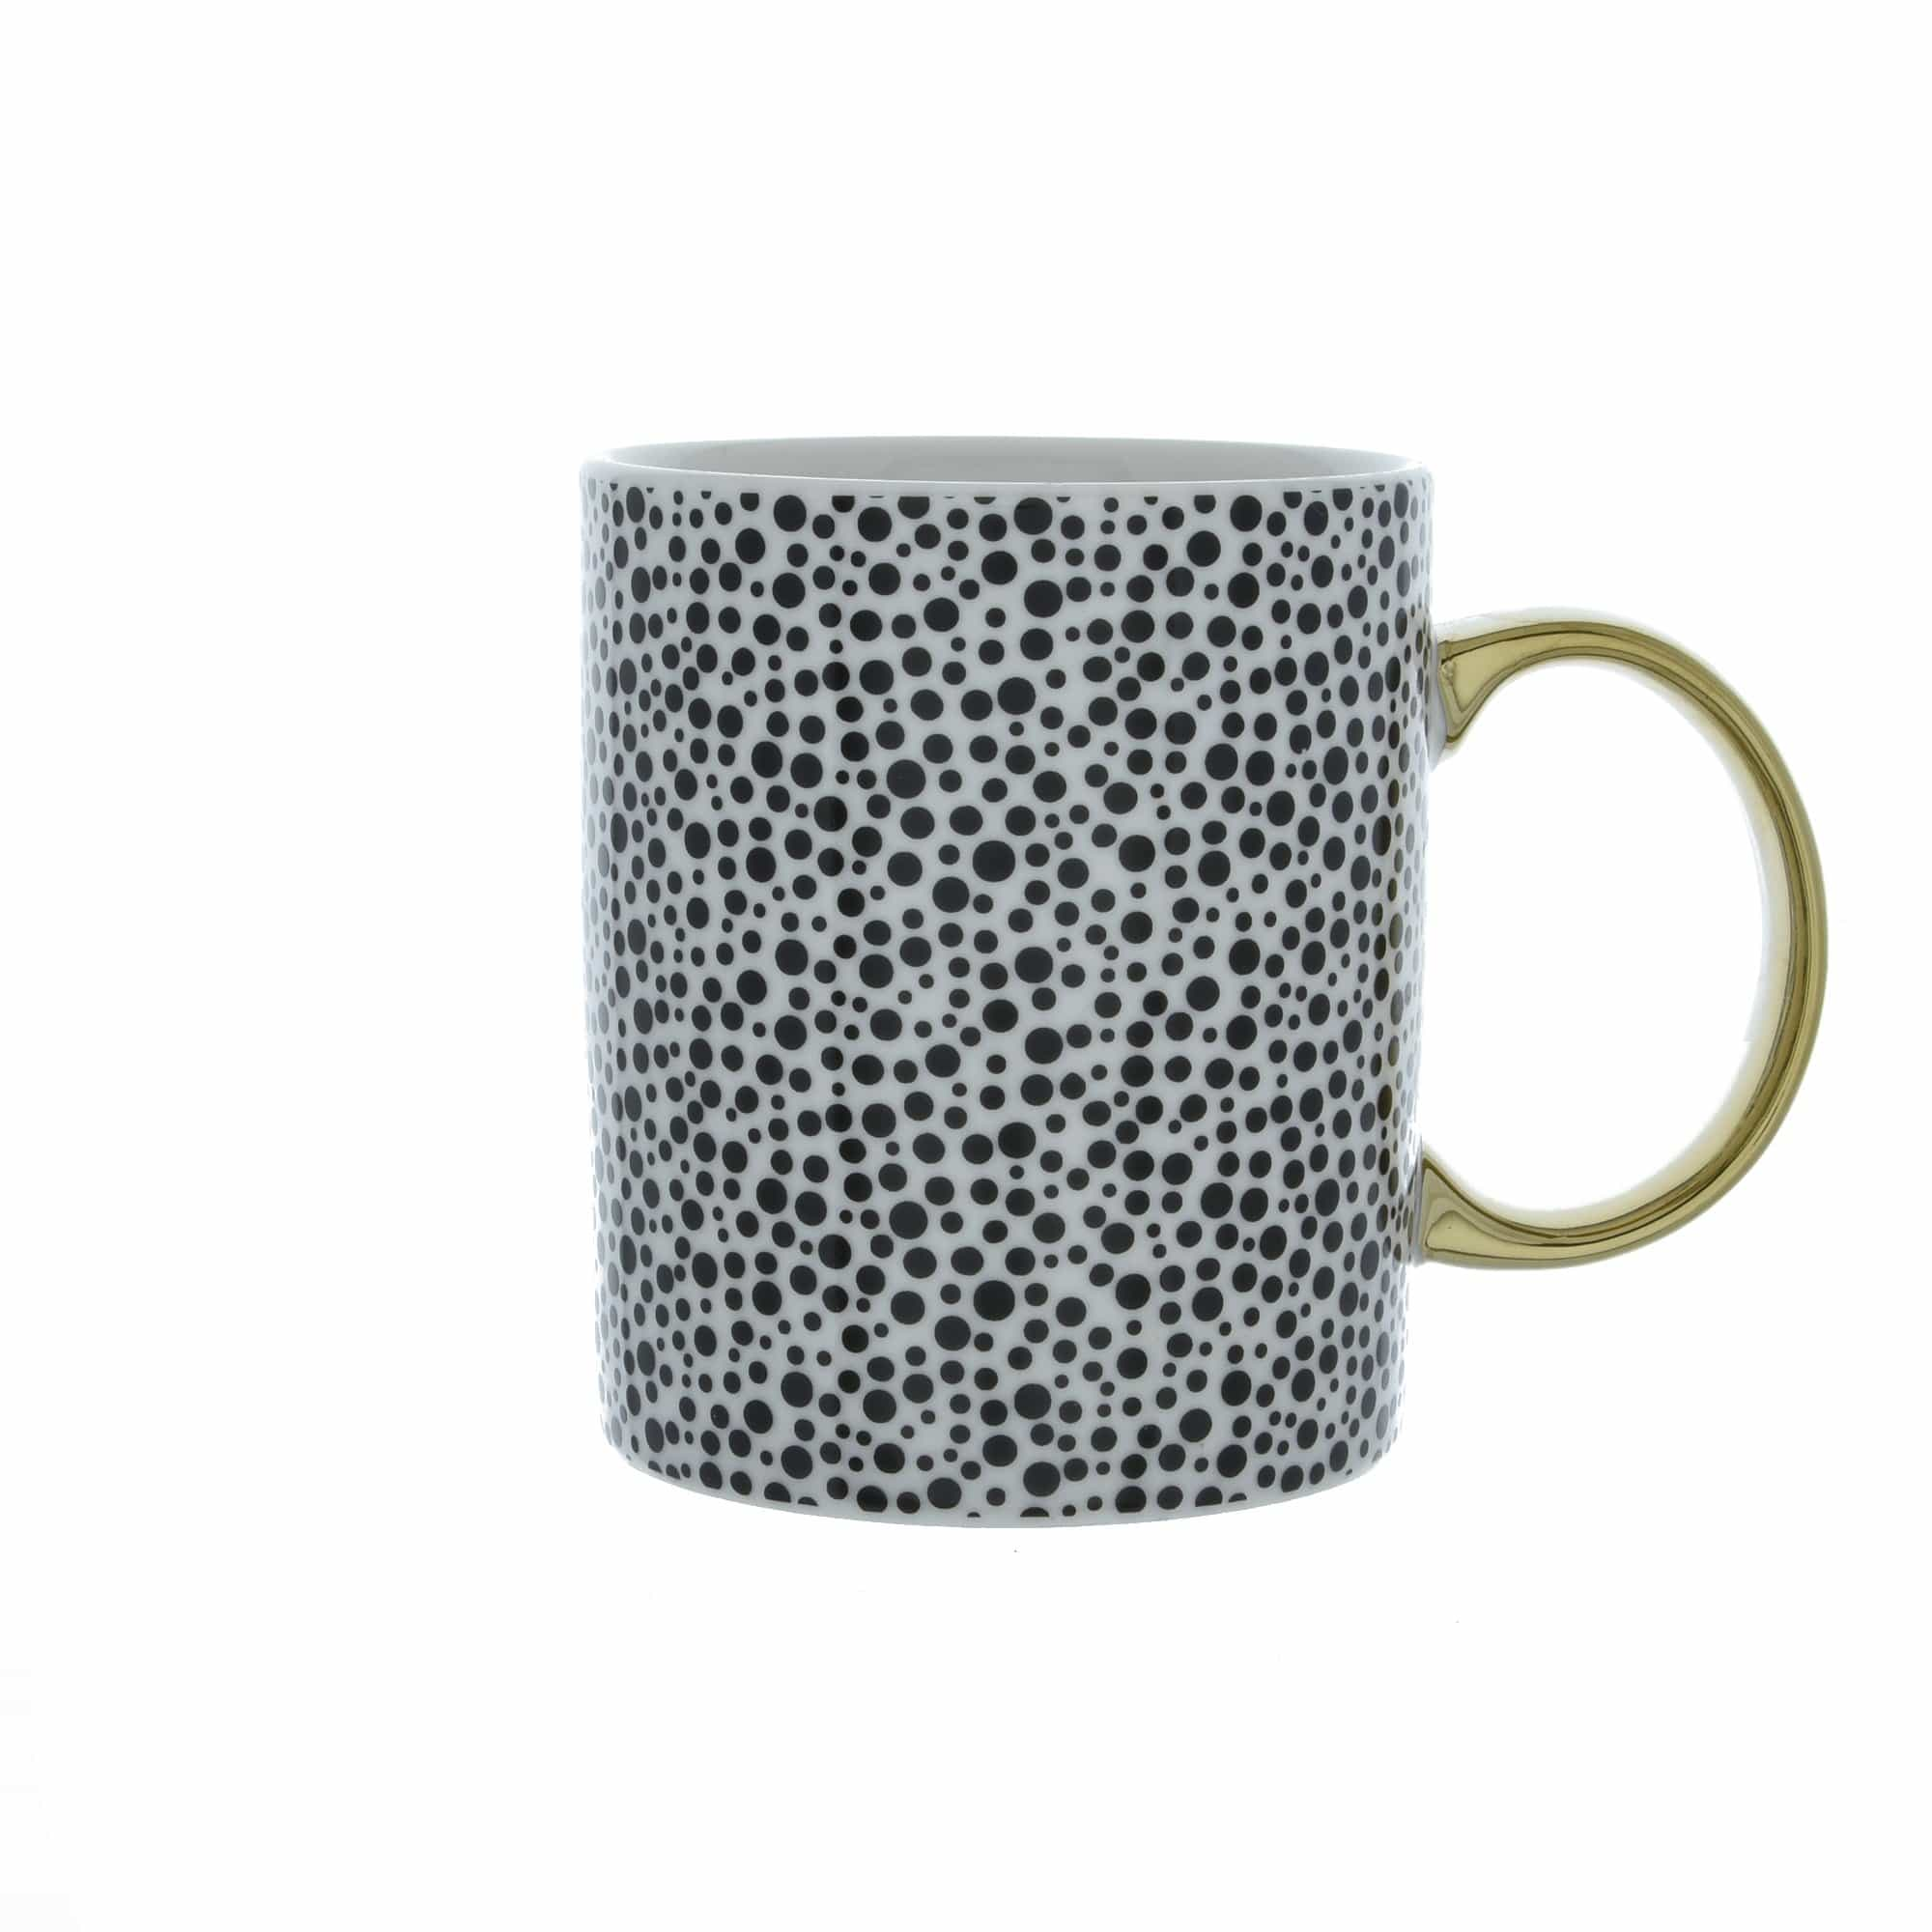 Candlelight Home Mugs Monochrome Dotty MugGold 8cm 6PK